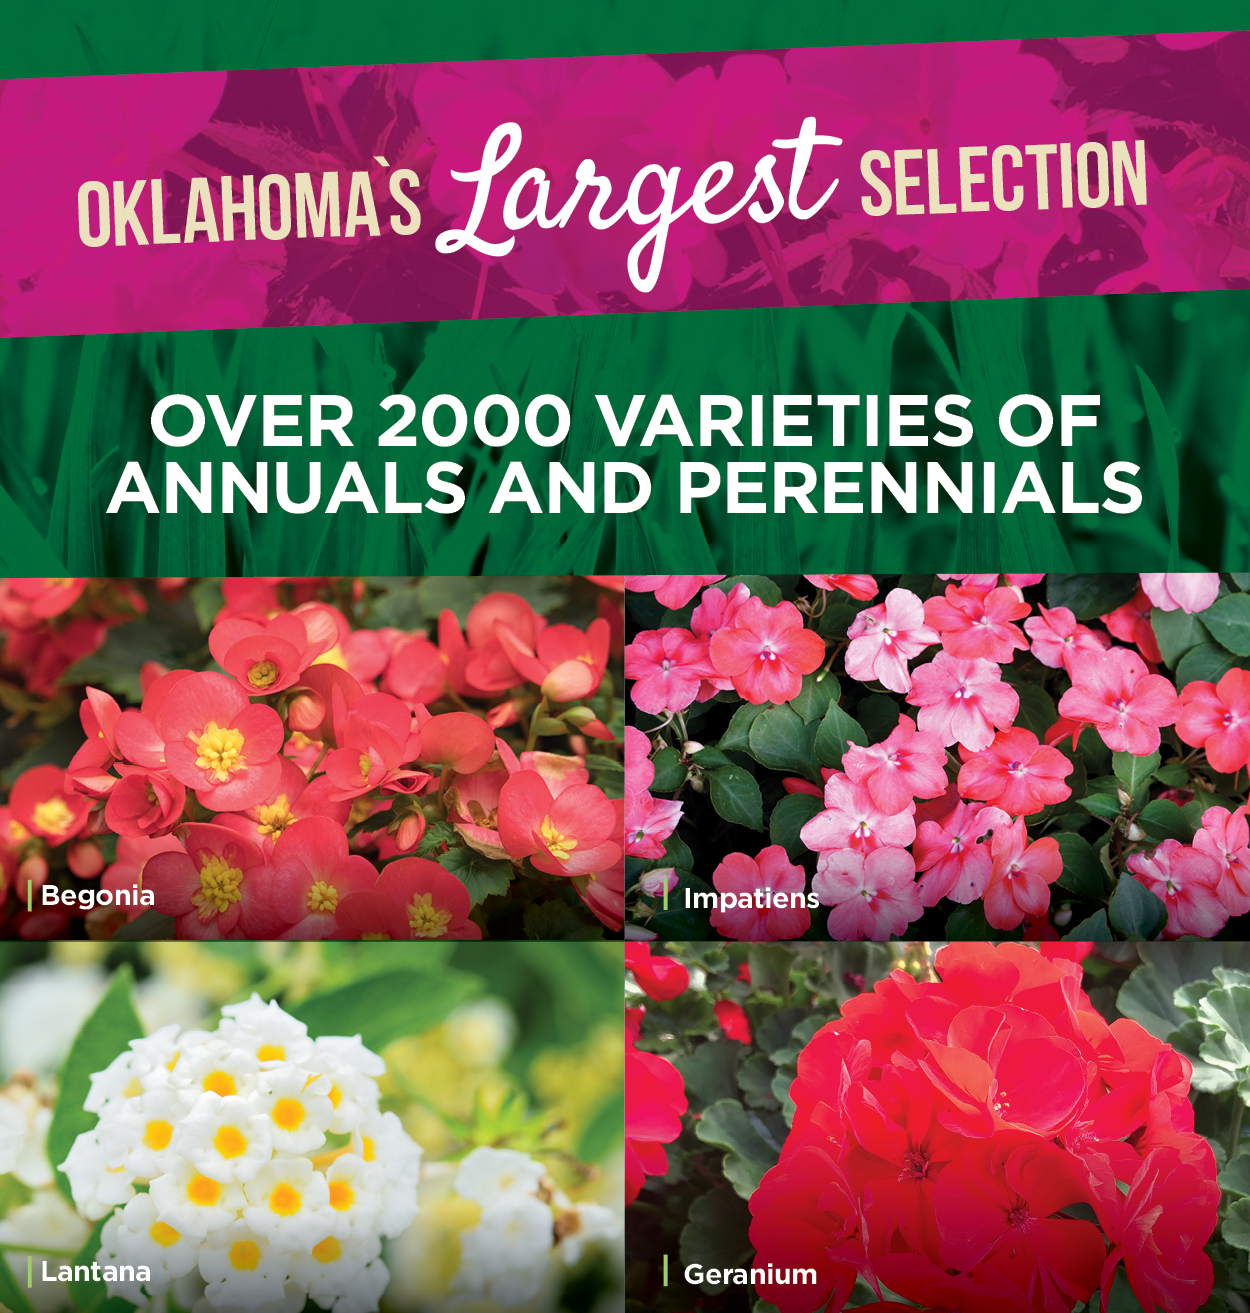 Oklahoma's Largest Selection